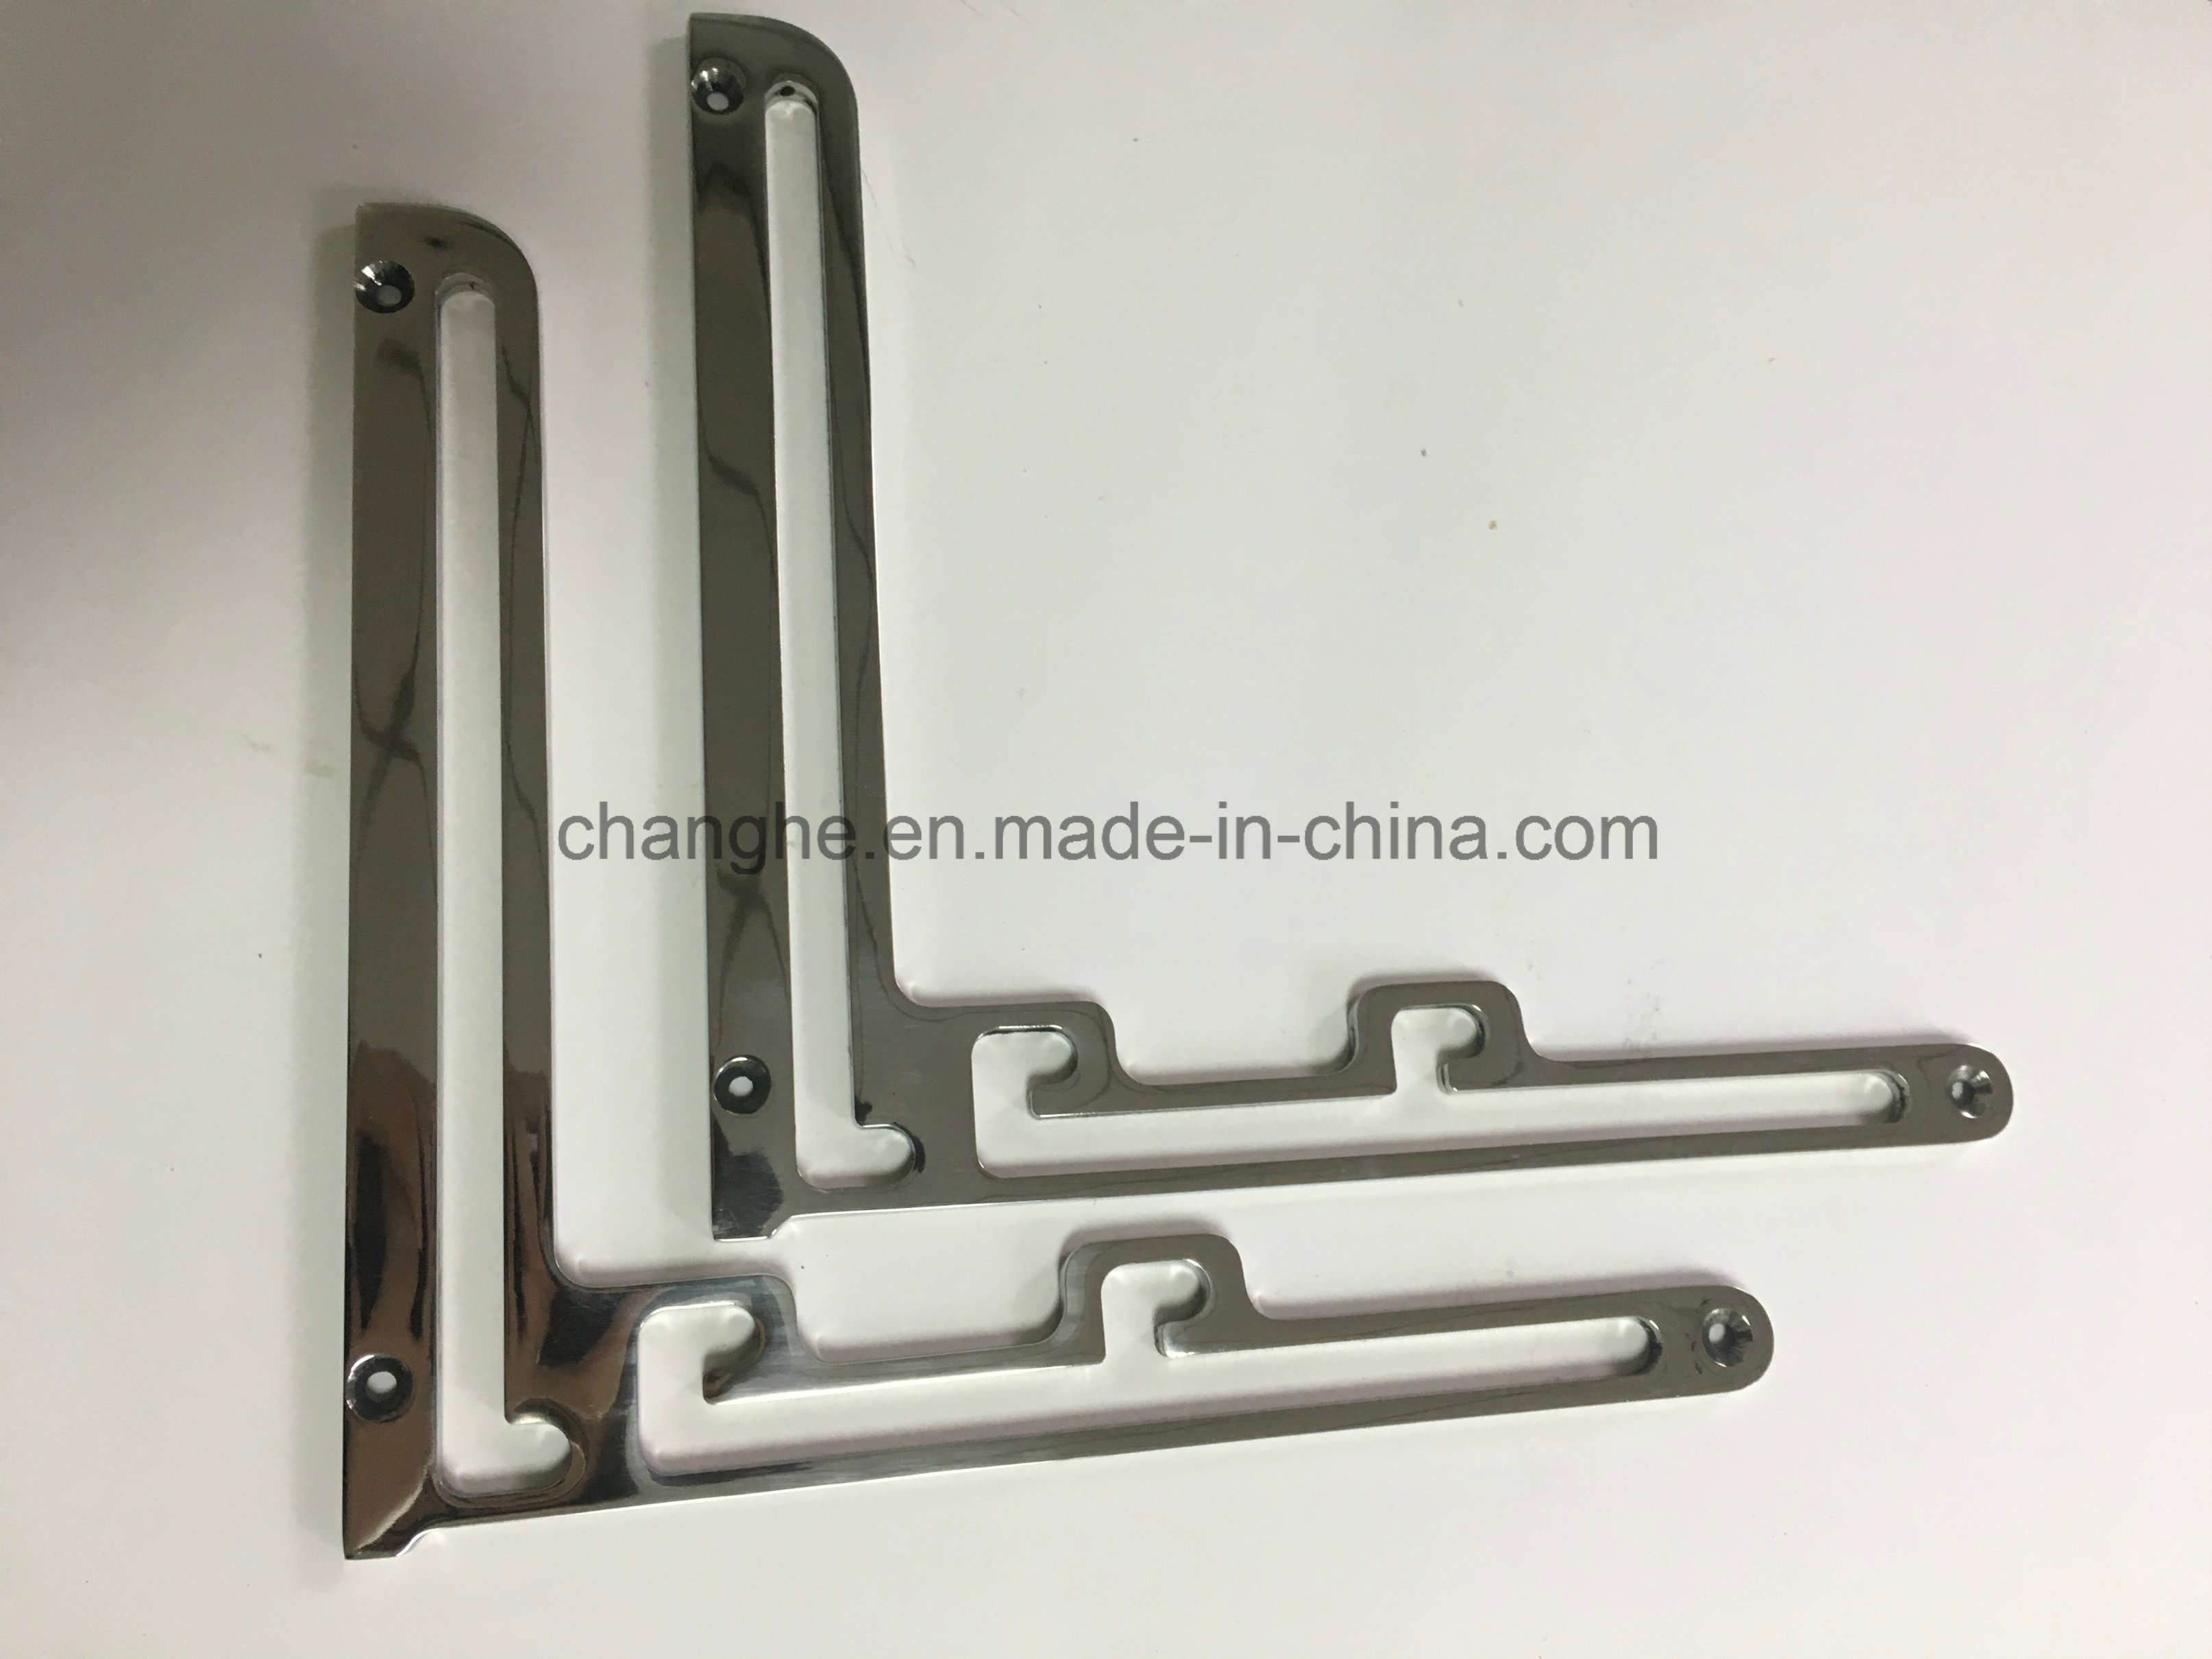 Polishing Stainless Steel Investment Casting